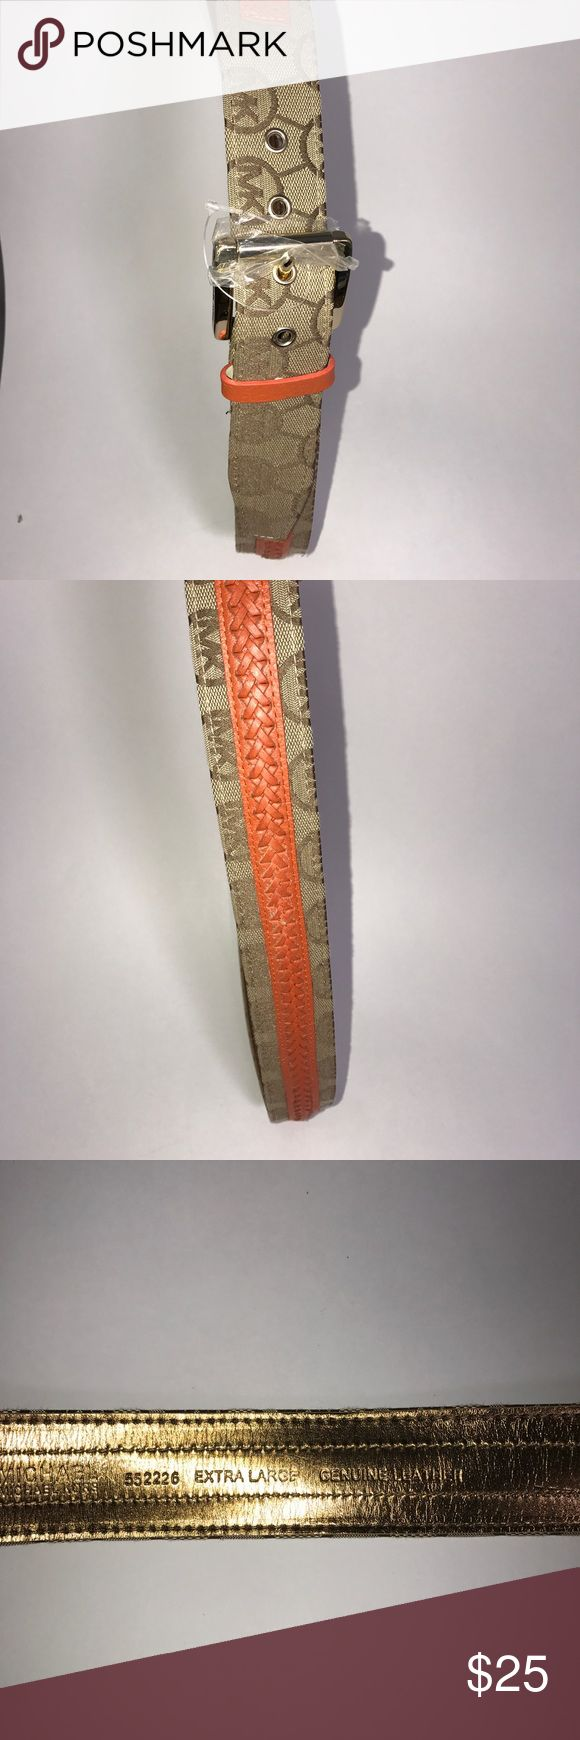 """Michael Kors Woman's Belt Tan Dark Orange XL Michael Kors Woman's tan and dark orange leather and fabric belt. From first to last hole, 40-44"""". (Y2-21)     🌼 No holes, piling or stains. Items stored in smoke free, pet free, perfume free environment. No trades or modeling. Same or next day shipping.  Save by bundling. All offers should be submitted with the offer button. Michael Kors Accessories Belts"""